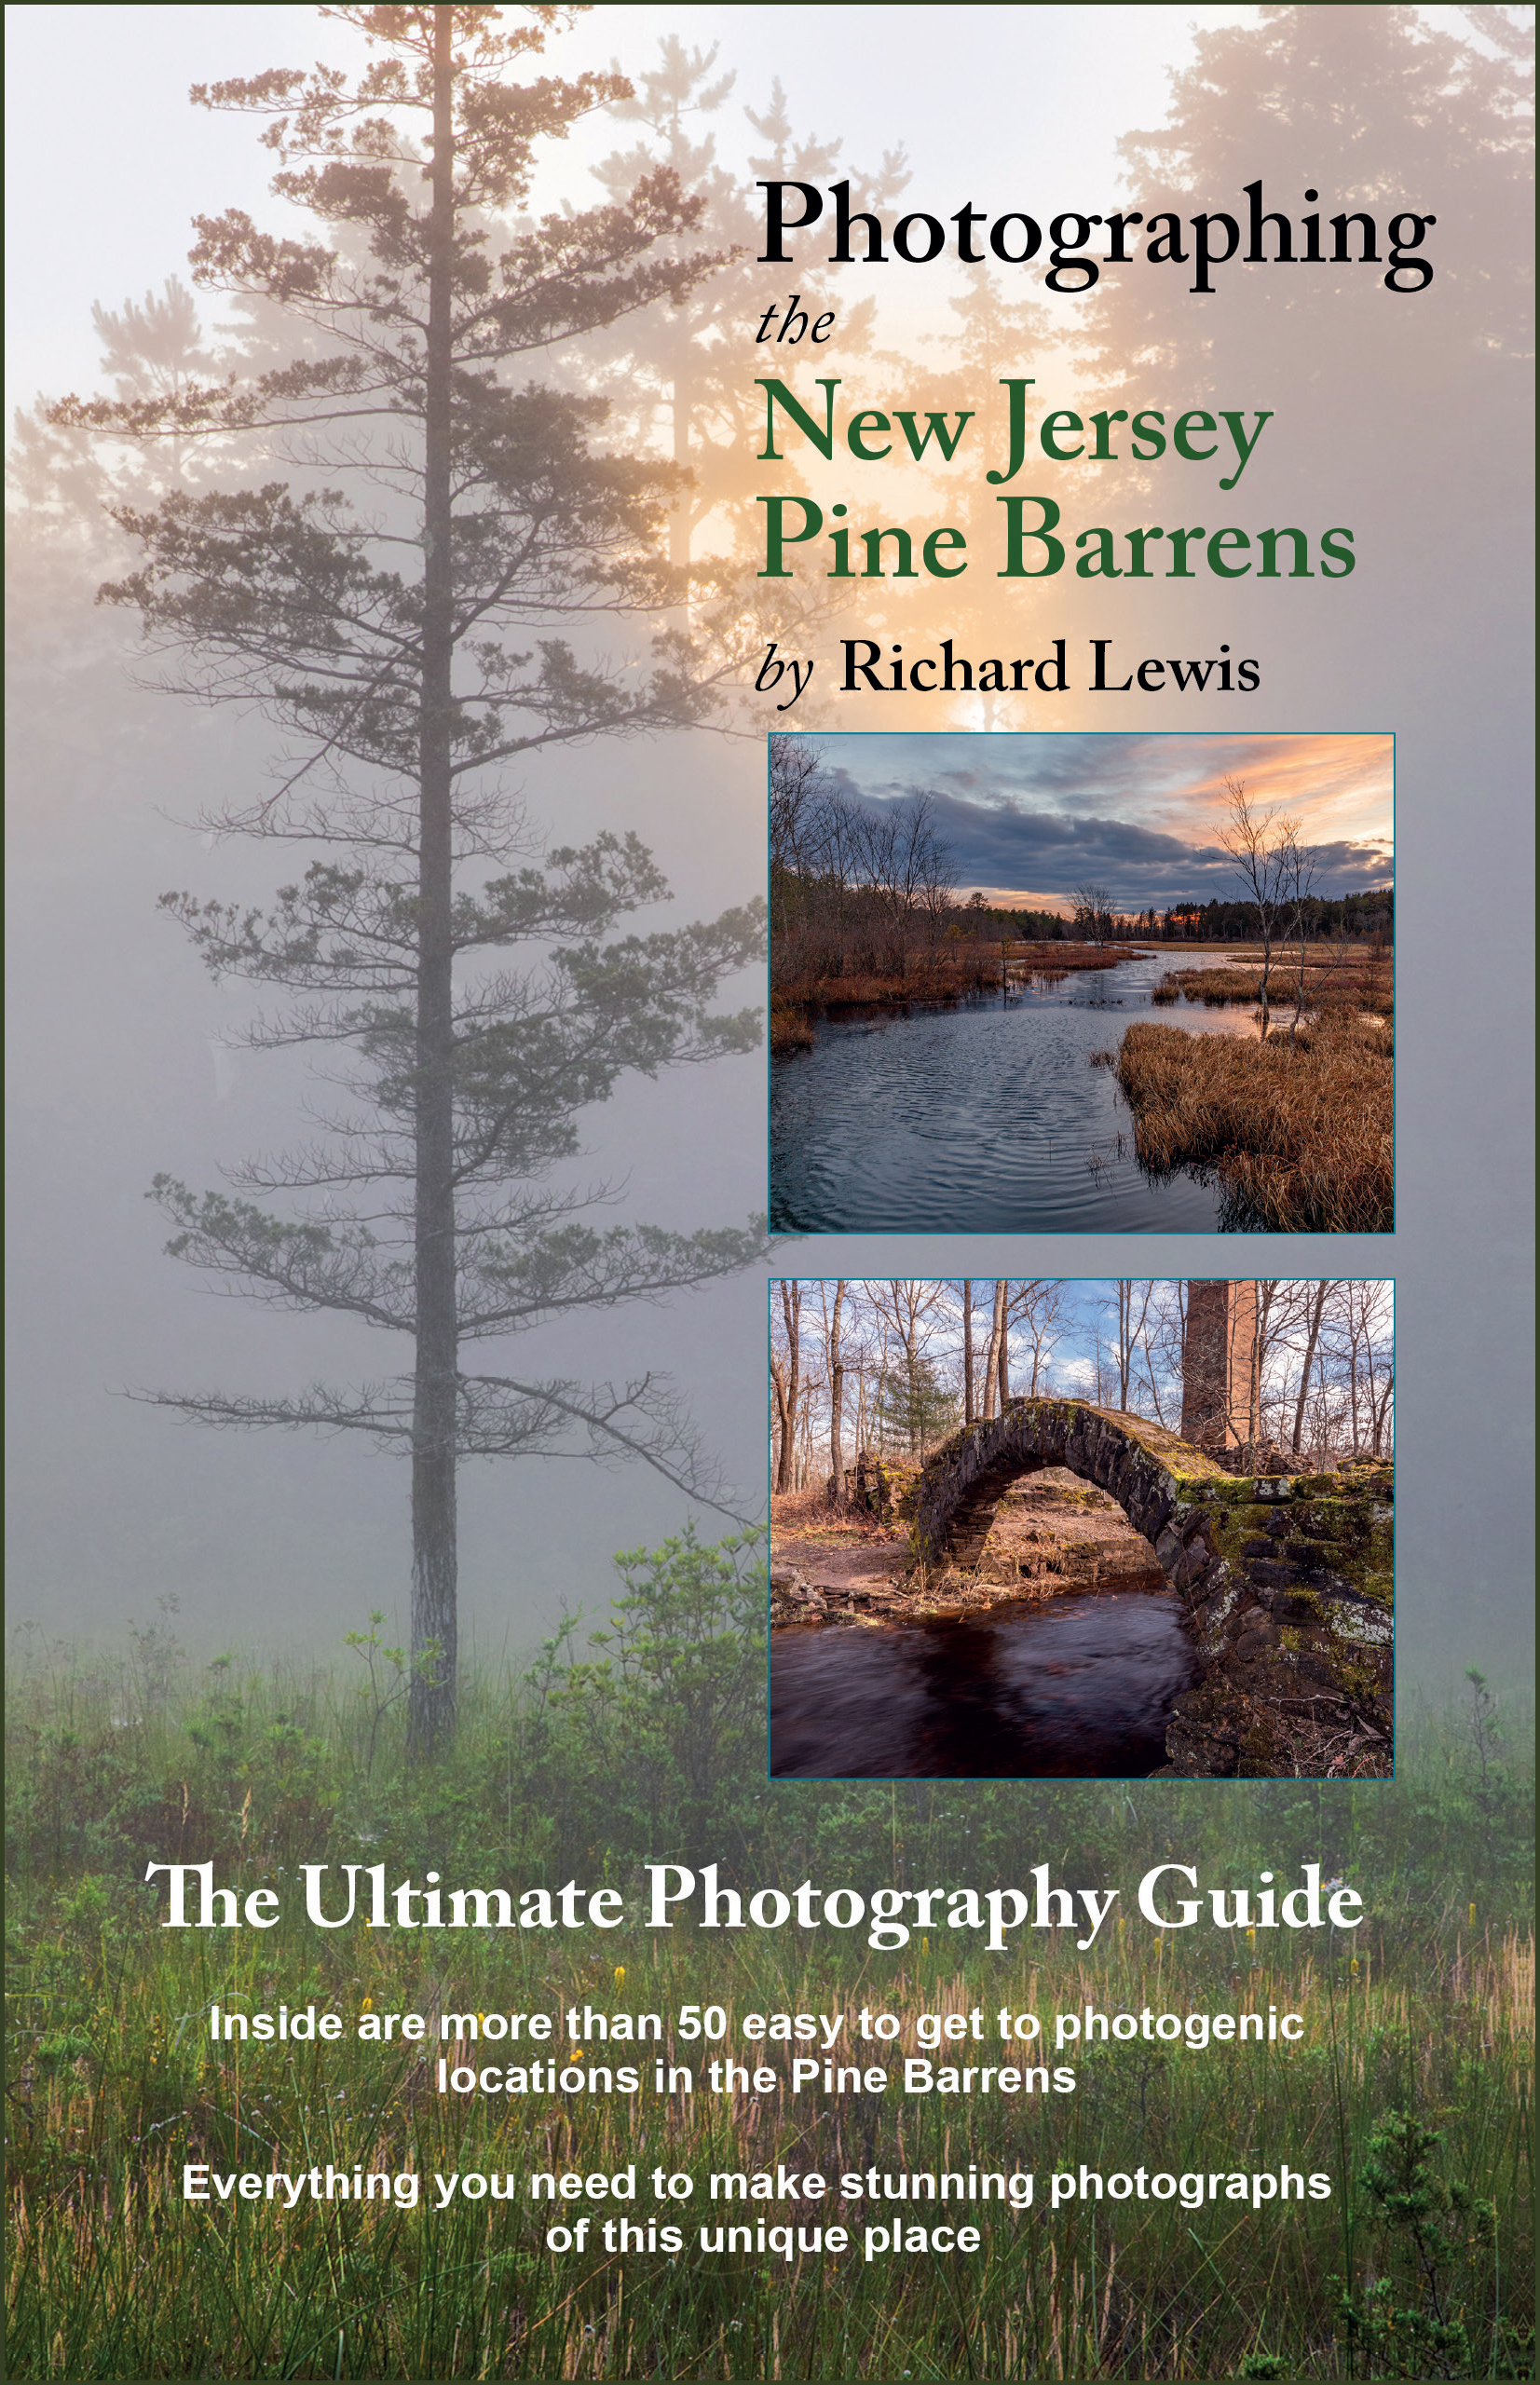 NJ Pine Barrens Photography Guide Book